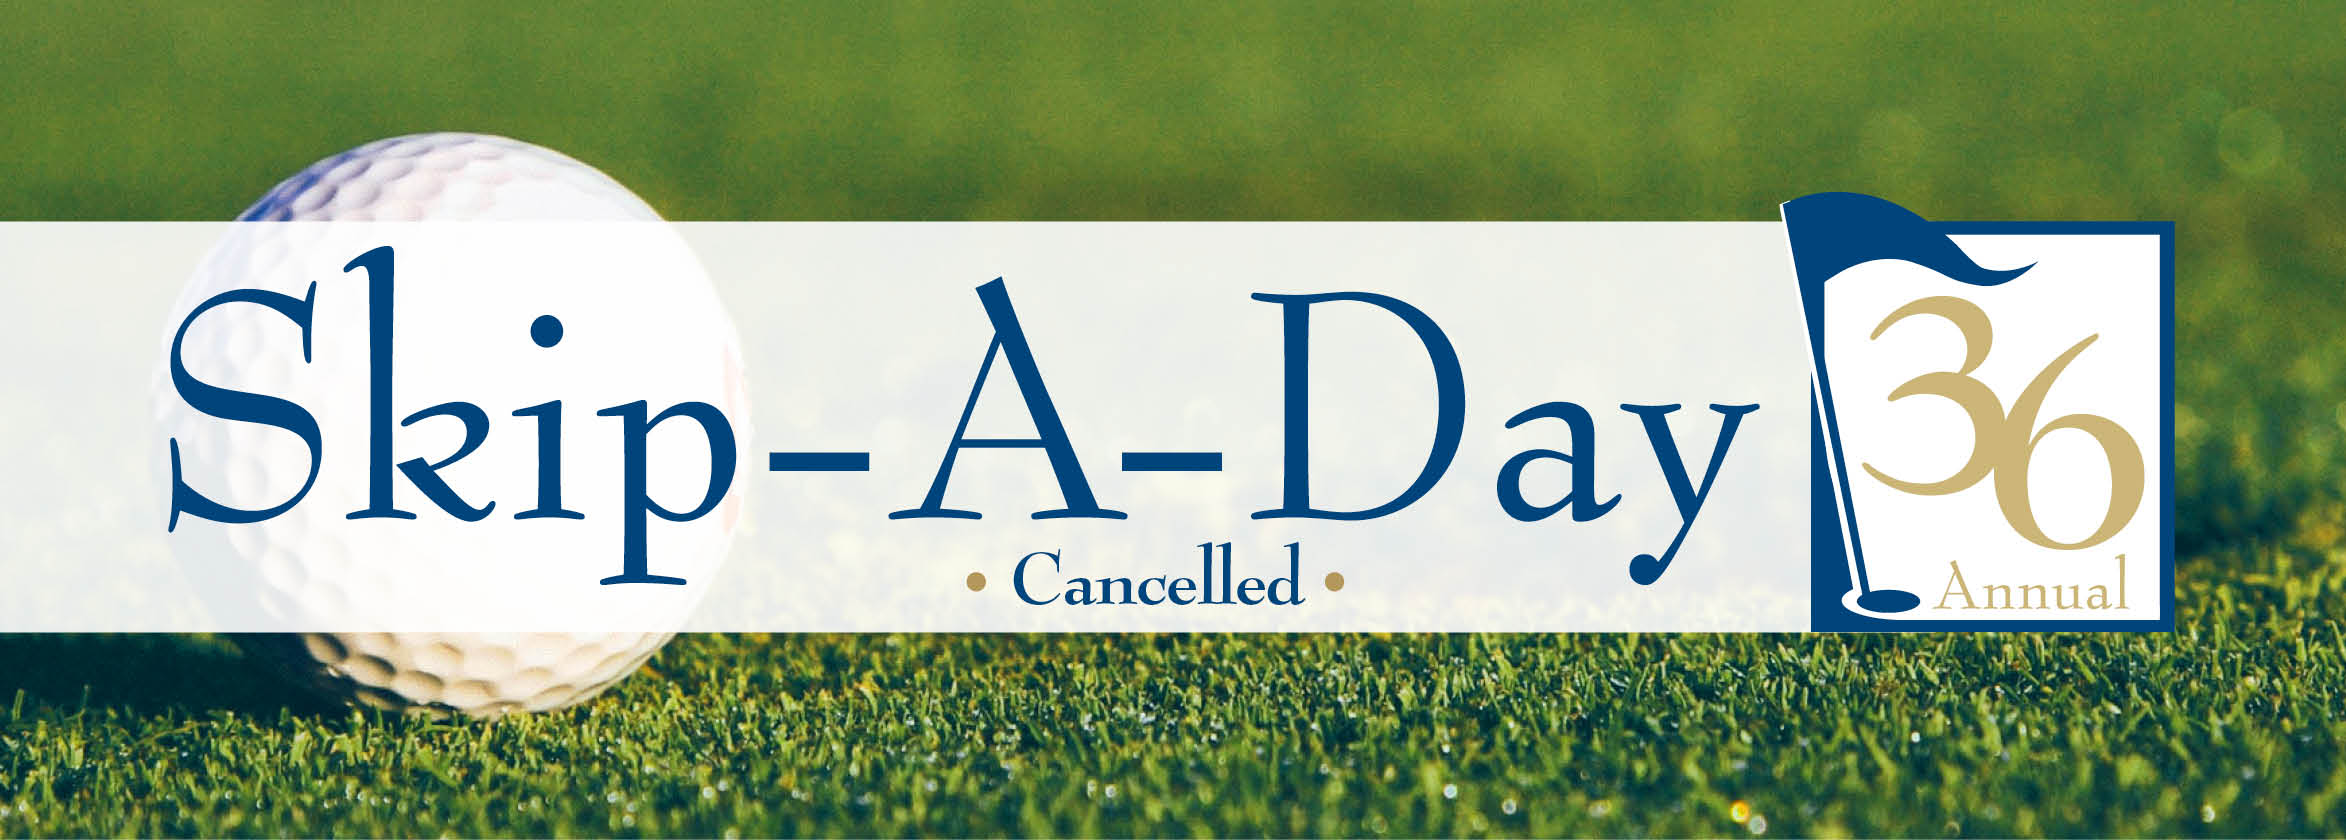 Skip A Day 36 cancelled. Golf ball in grass.